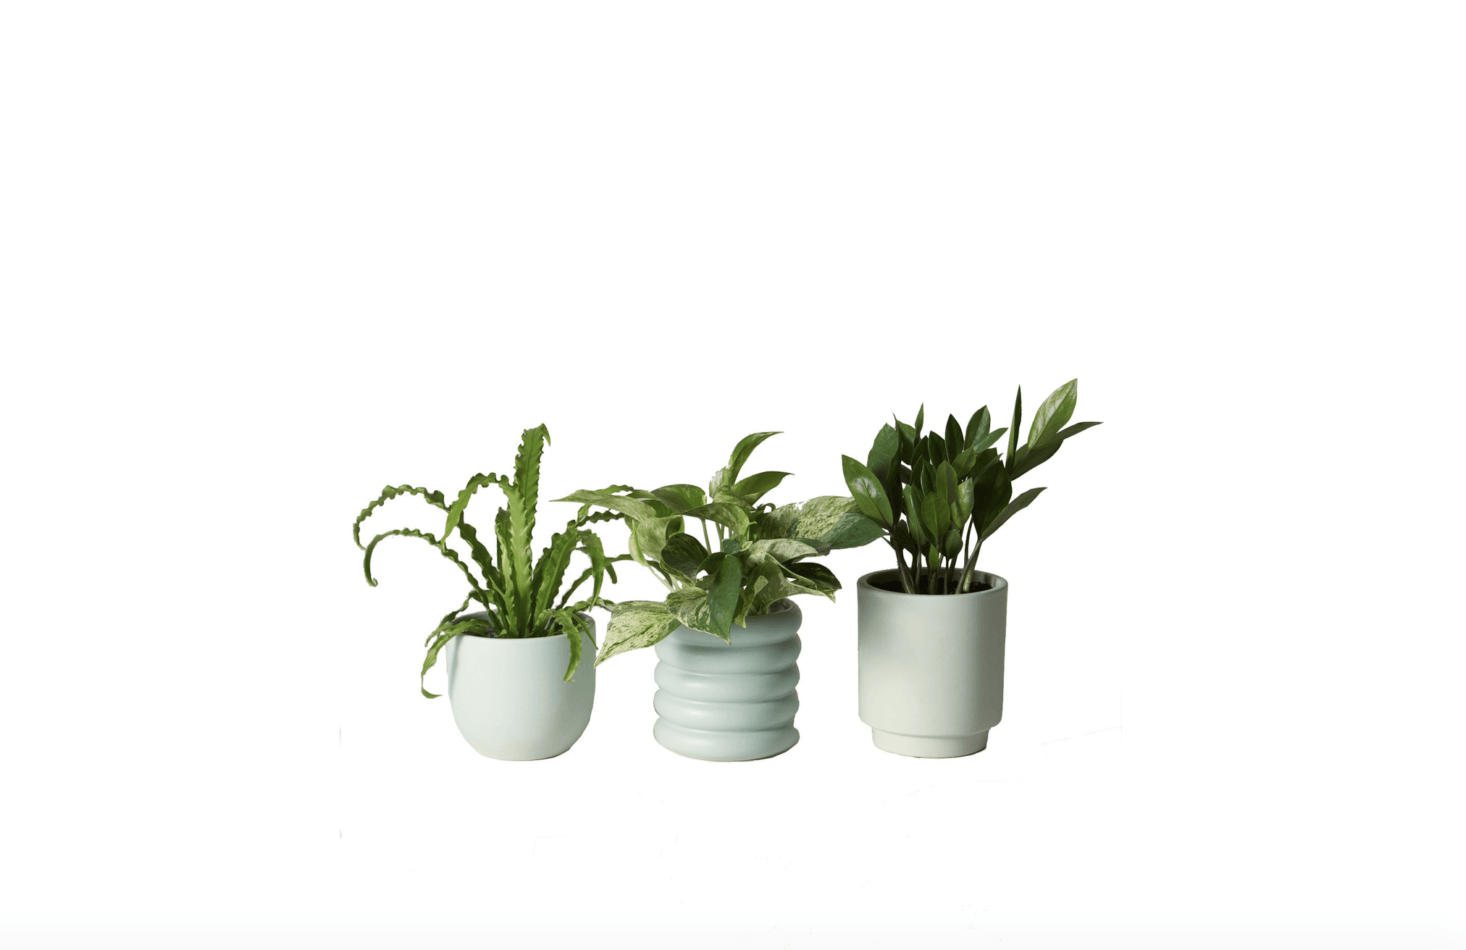 From NY-based The Sill, a plant-of-the-month subscription can be customized to deliver Low Light Plants, Pet-Friendly Plants, or Plants for Beginners in 5-inch earthenware planters (available in five colors including mint as shown); $35 a month.